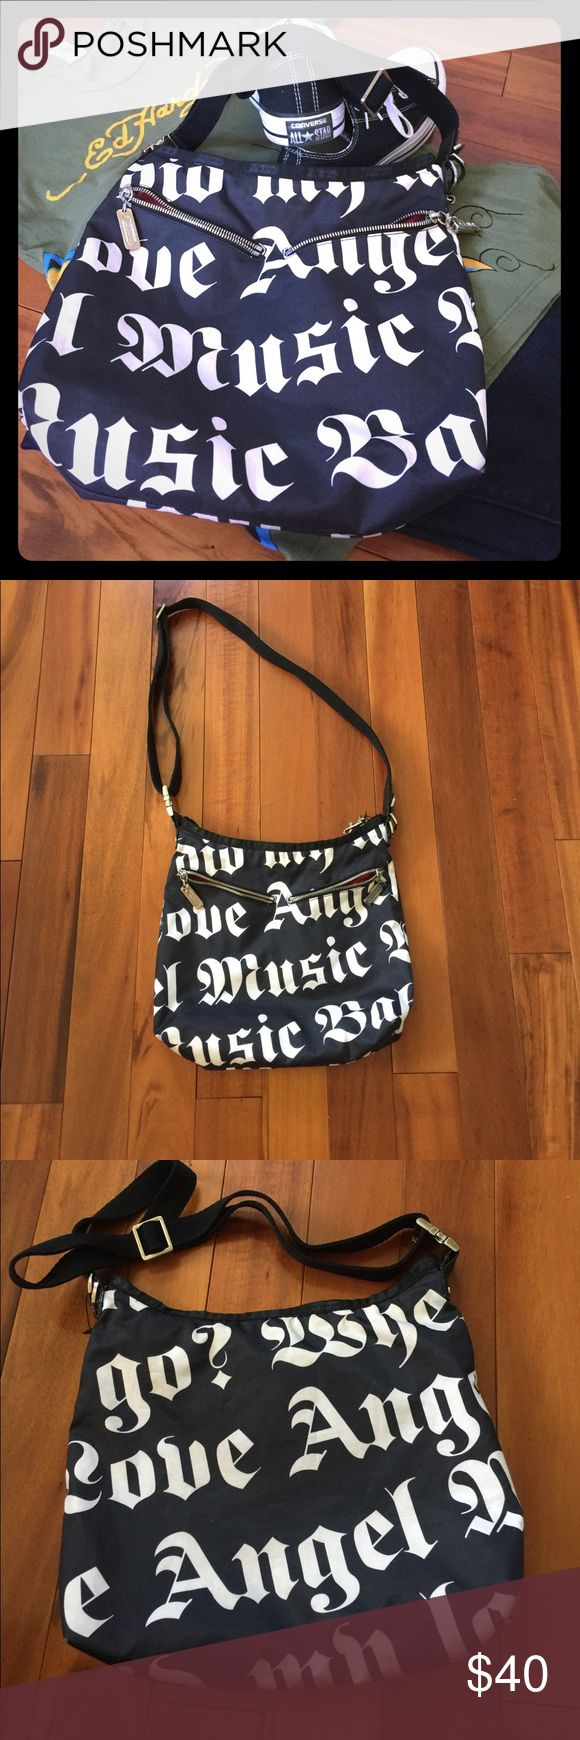 Gwen Stefani LAMB Le Sportsac Black & White Bag! Gorgeous Love, Angel, Music, Baby Gwen Stefani LAMB Bag!  Bought in 2004, this bag is a classic in used but fantastic shape!  Minor wear on the outside, some staining on the inside as shown in photos.  Minor wear on the hardware as seen in pic.  Bag is an easy to wipe Nylon and has an adjustable canvas strap.  Great bag for casual but cool on the go looks!  Bag measure 13L x 11H x 3.5W.  Shown styled with Ed Hardy tee and Banana Republic Jeans…